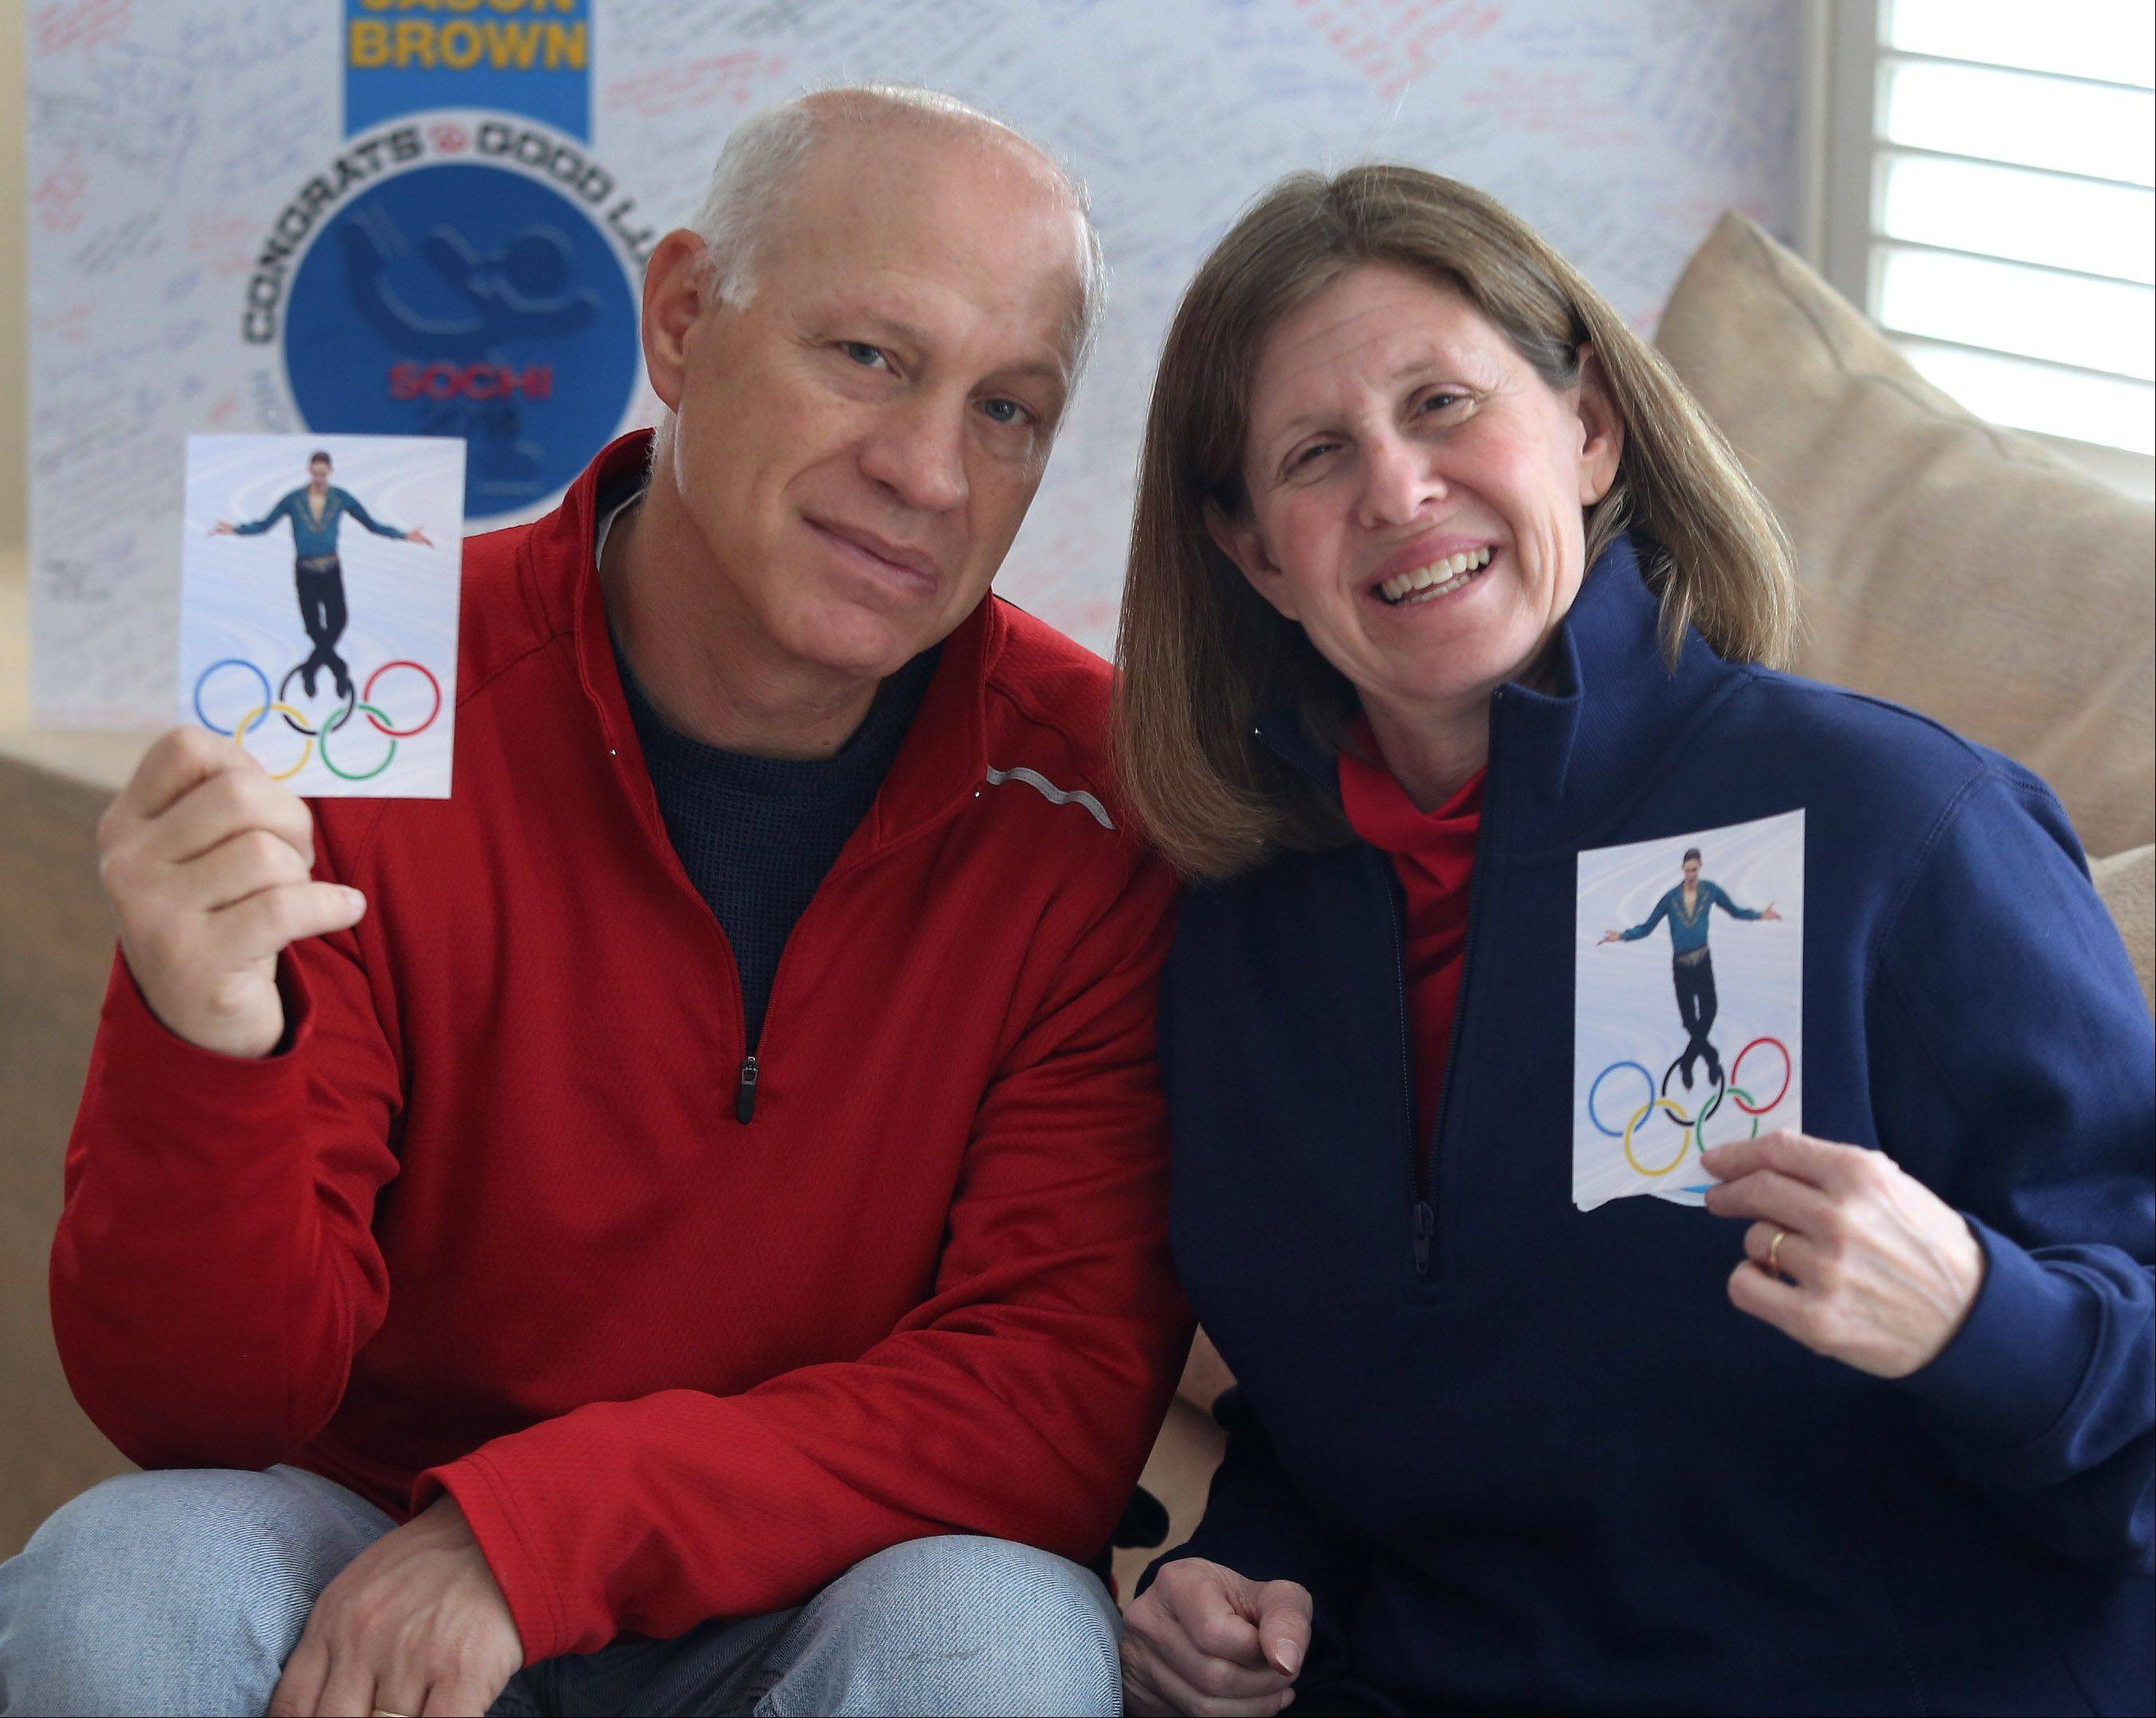 Steve and Marla Brown of Highland Park are heading to Sochi, Russia, to watch their son Jason compete in men's figure skating in the Olympics. Highland Park has handed out ribbons to display in support of Jason.